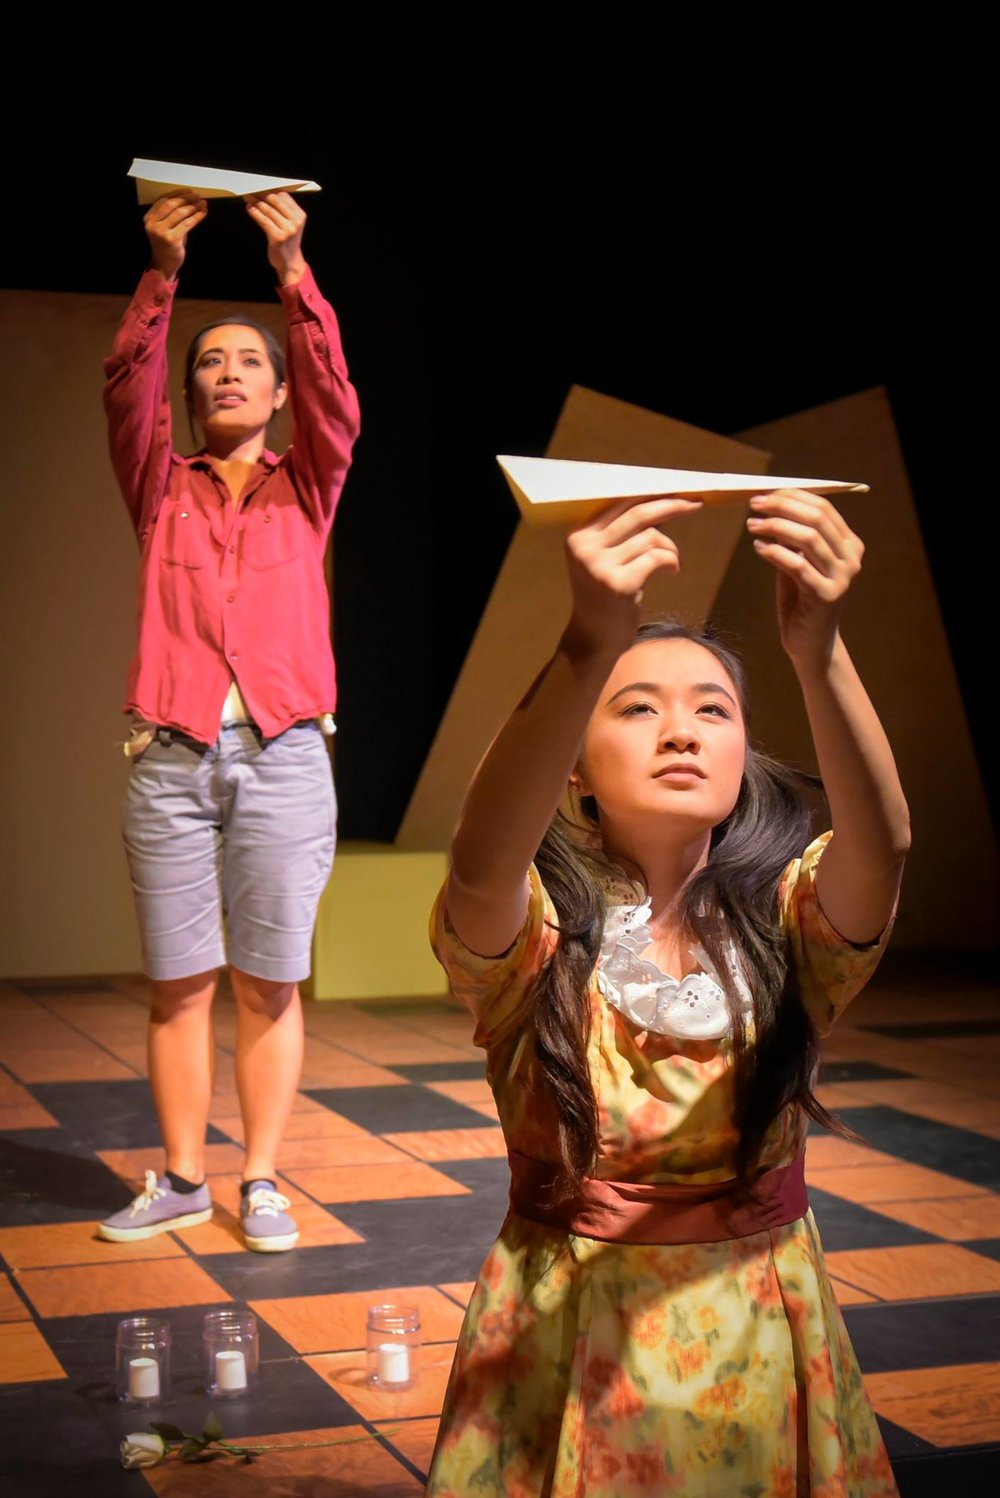 Back: Aureen Almario. Front: Alyssa So. Photo from Chasing Papeles 2016 production, UC Berkeley Performing Arts. Photo courtesy of Alessandra Mello.